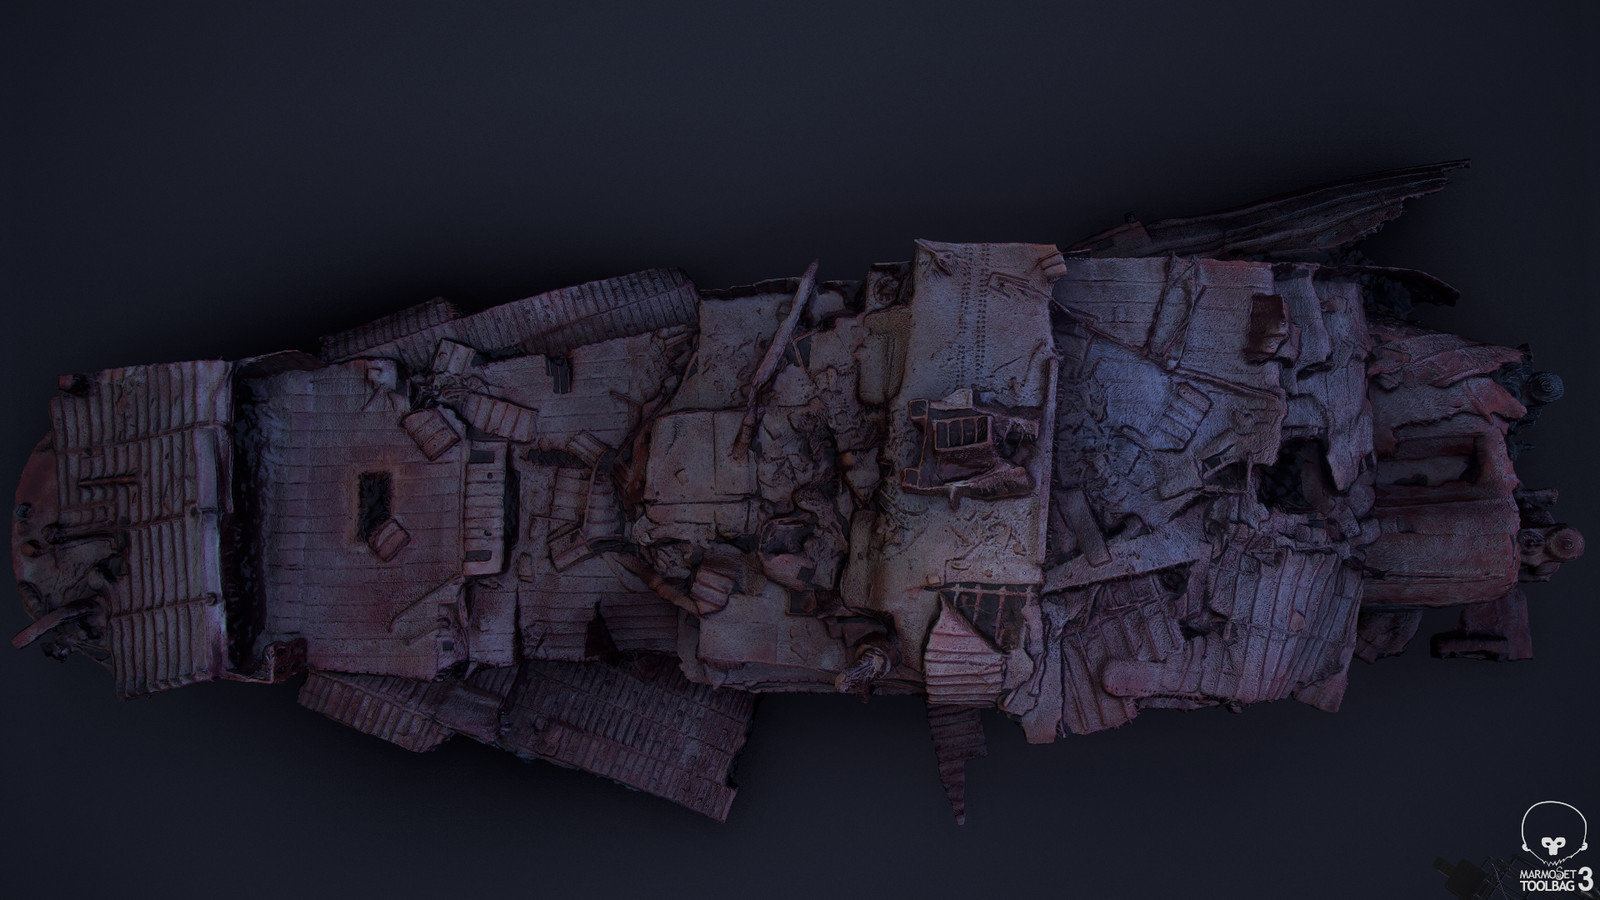 Agisoft Photoscan output geometry, viewed in Marmoset Toolbag 3 (01)